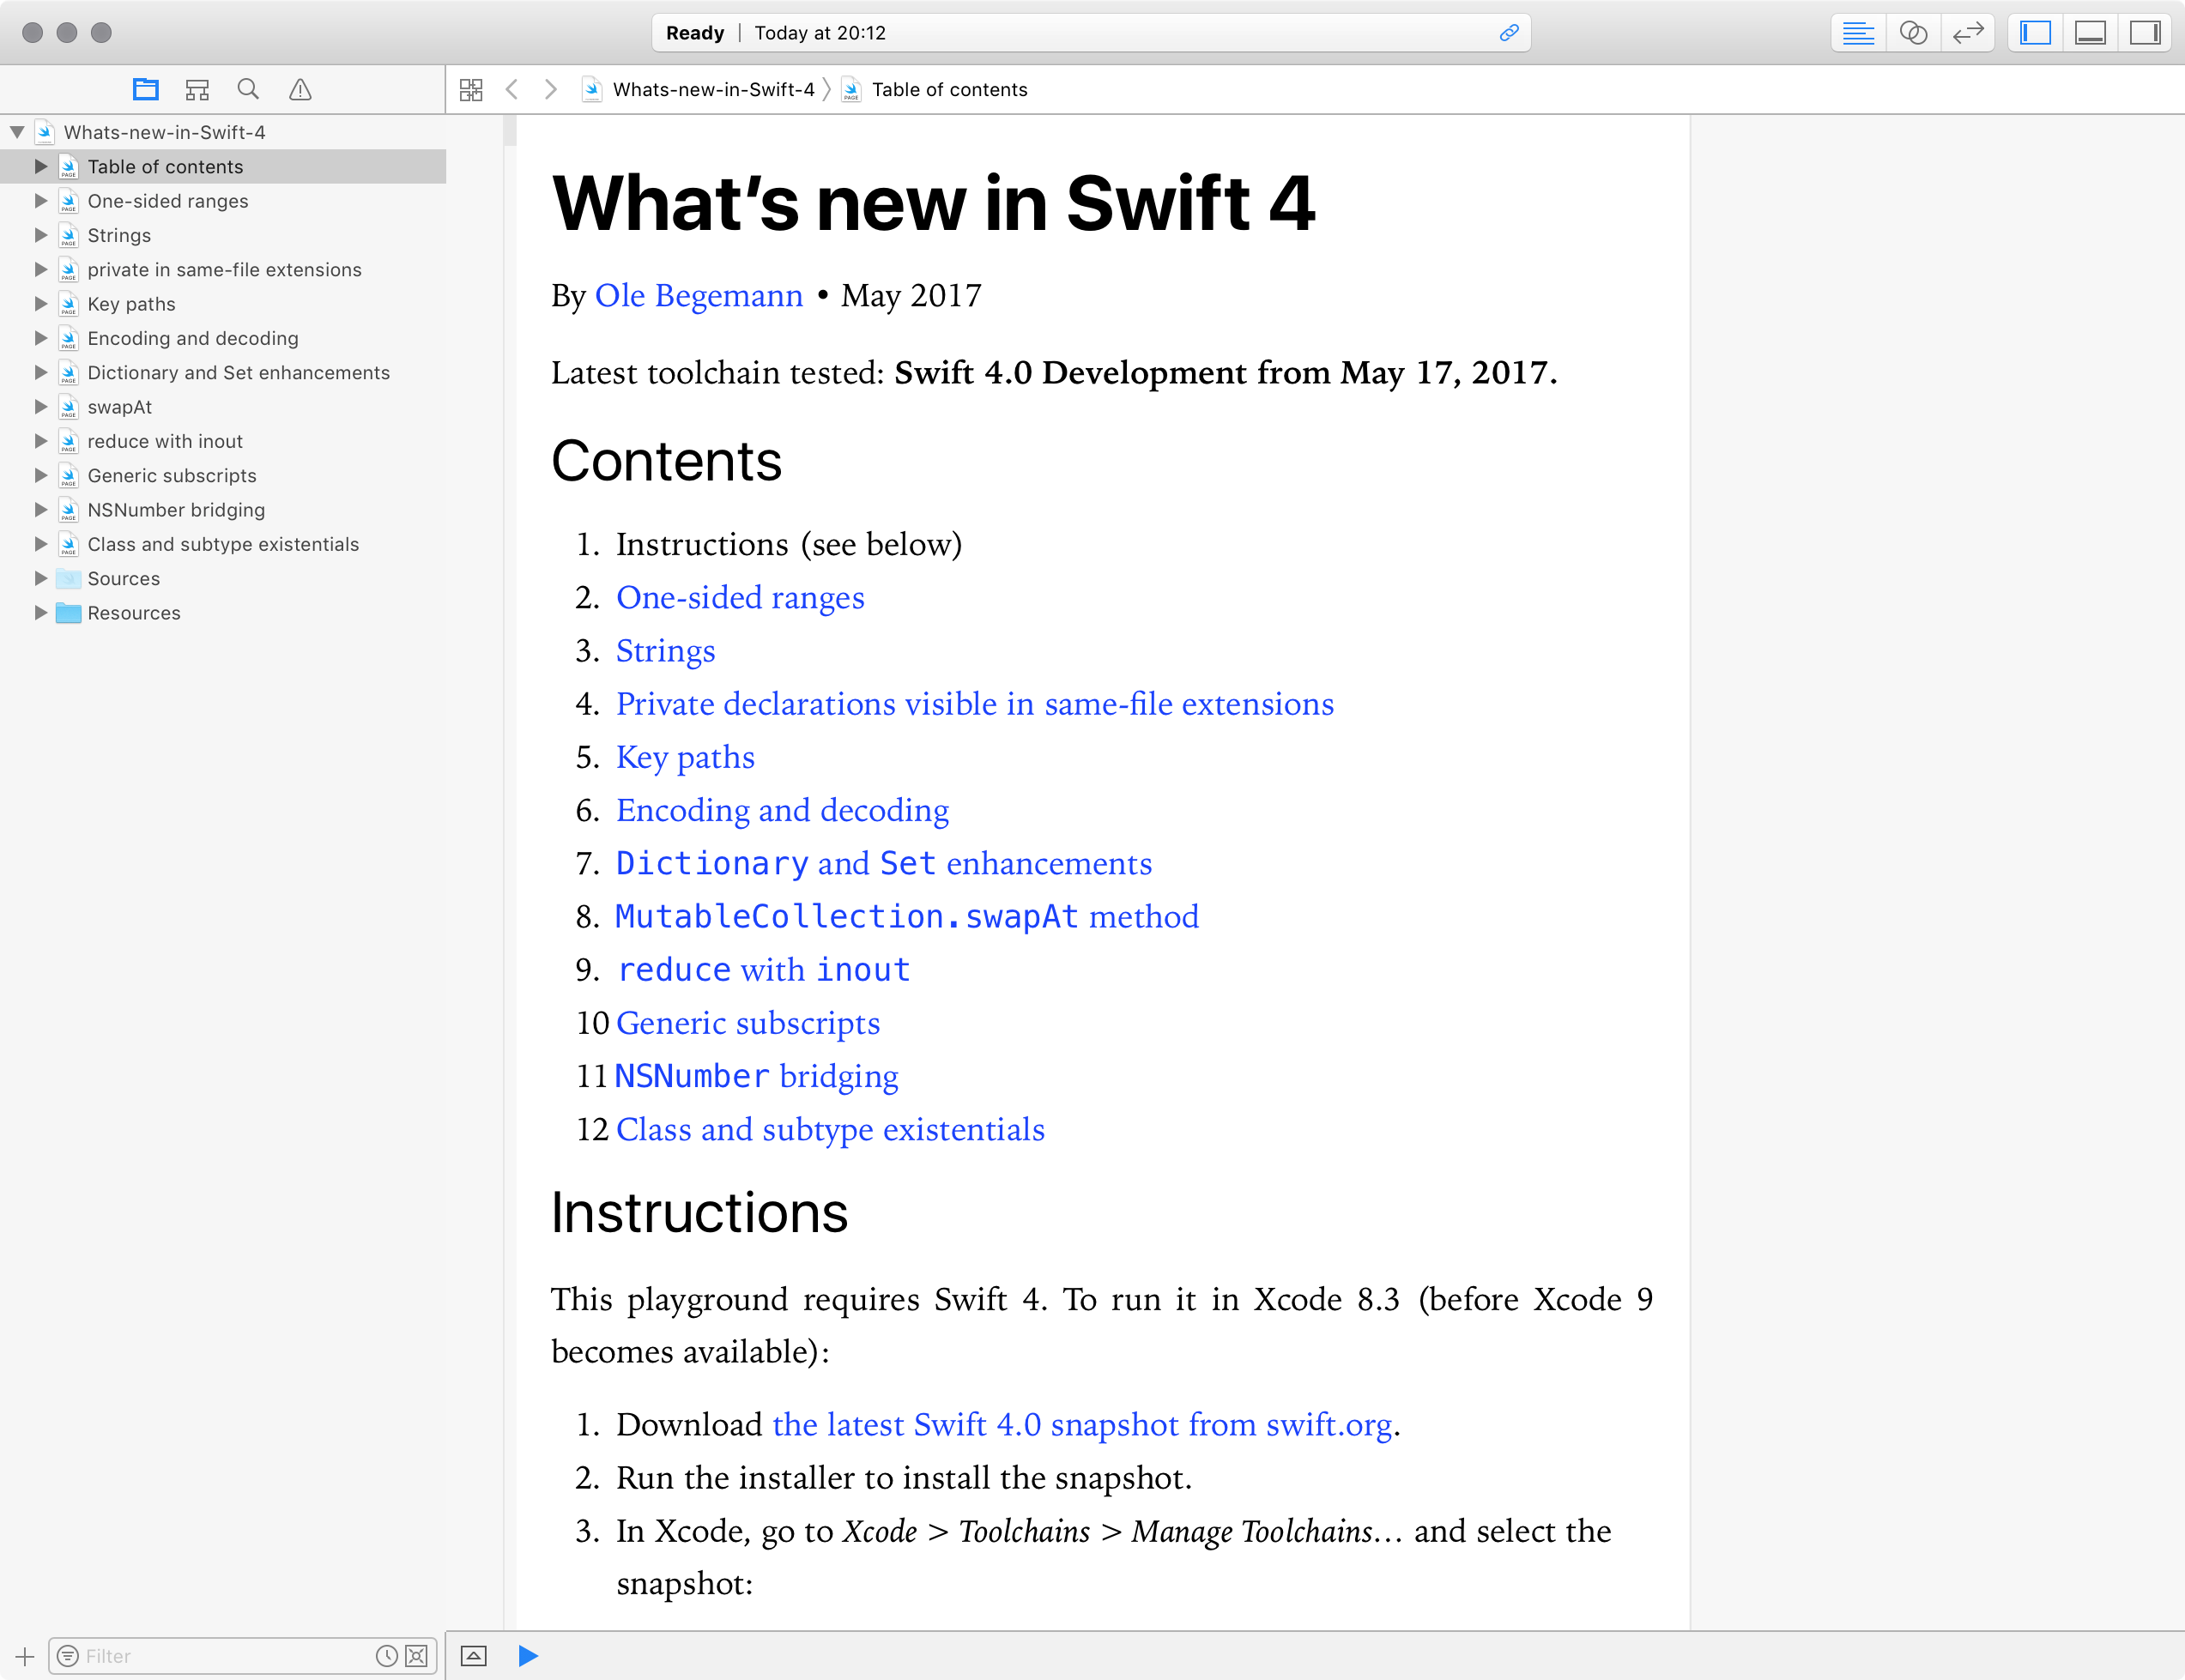 The What's new in Swift 4 playground